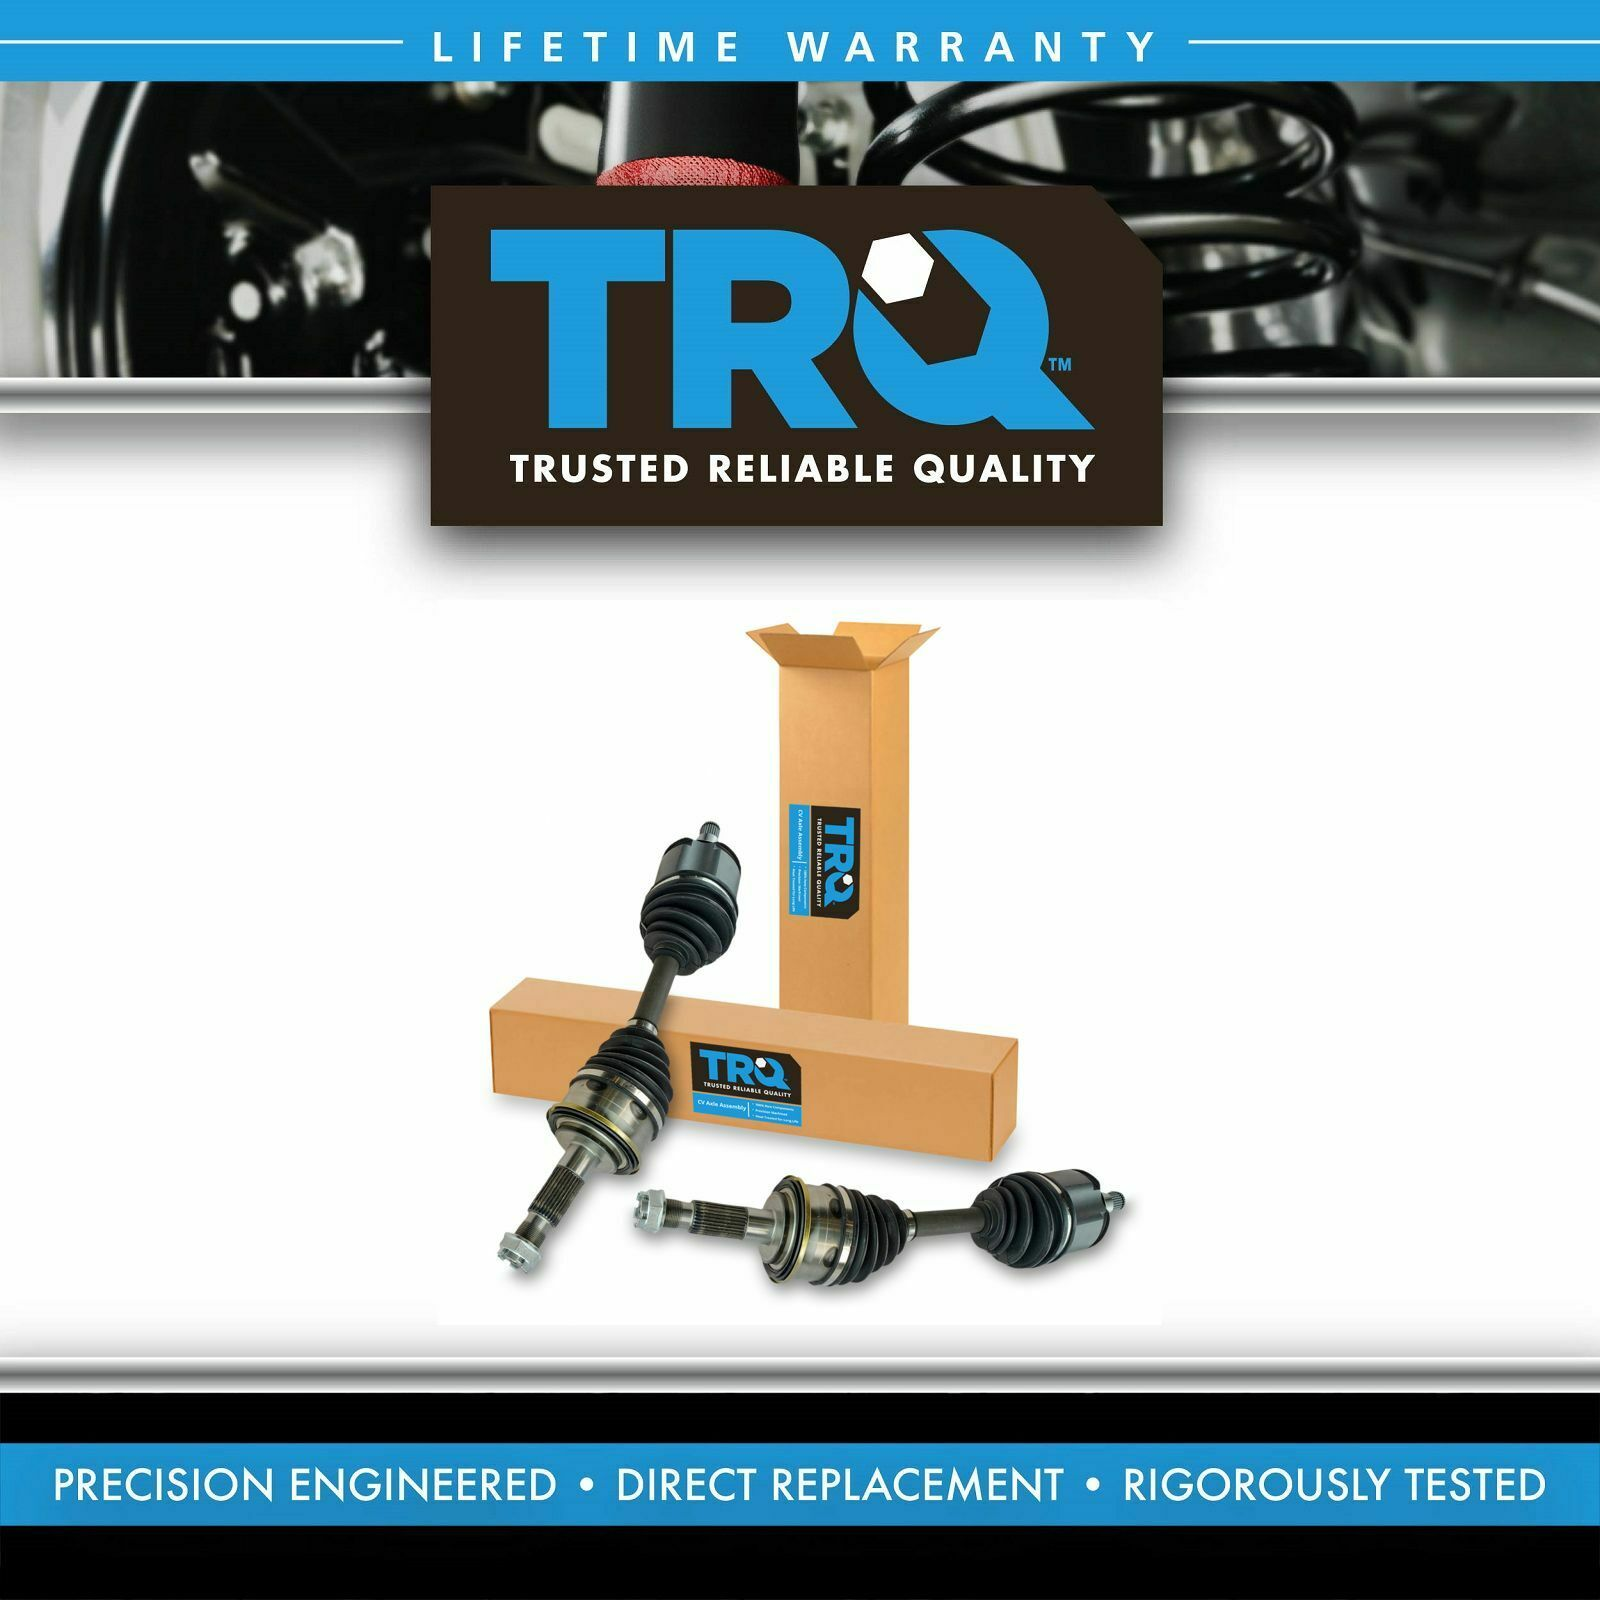 Trq Front Cv Axle Shaft Assembly Pair Set Of 2 For Toyota Tacoma 2000 4runner Driveshaft 1 7only 3 Available